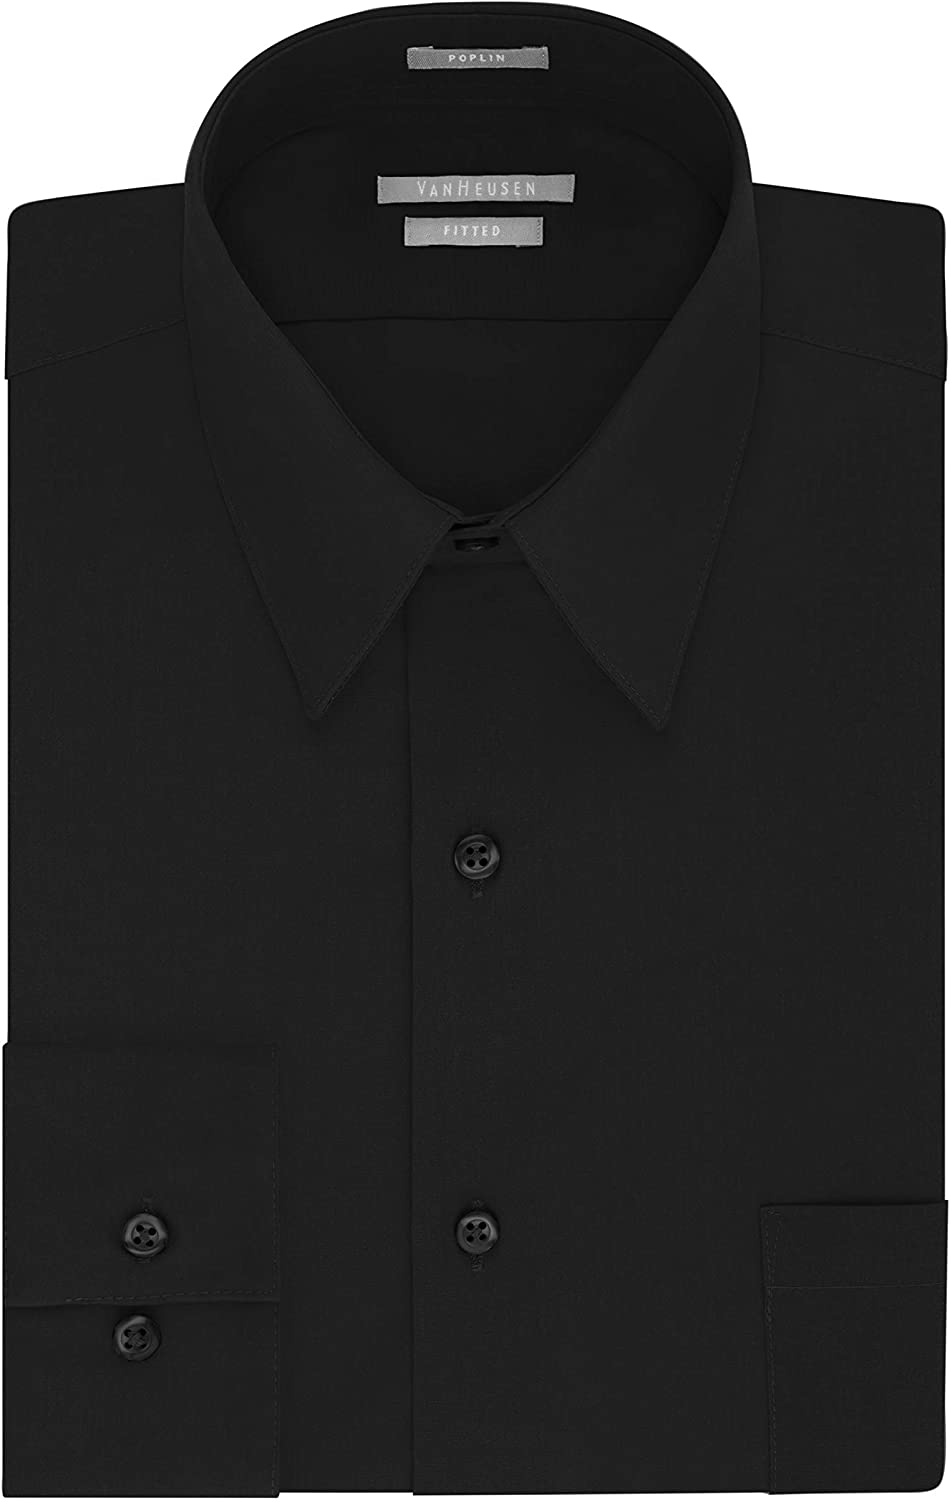 Van Sales of SALE items from new works Heusen Men's Dress Poplin Solid Fitted Reservation Shirt